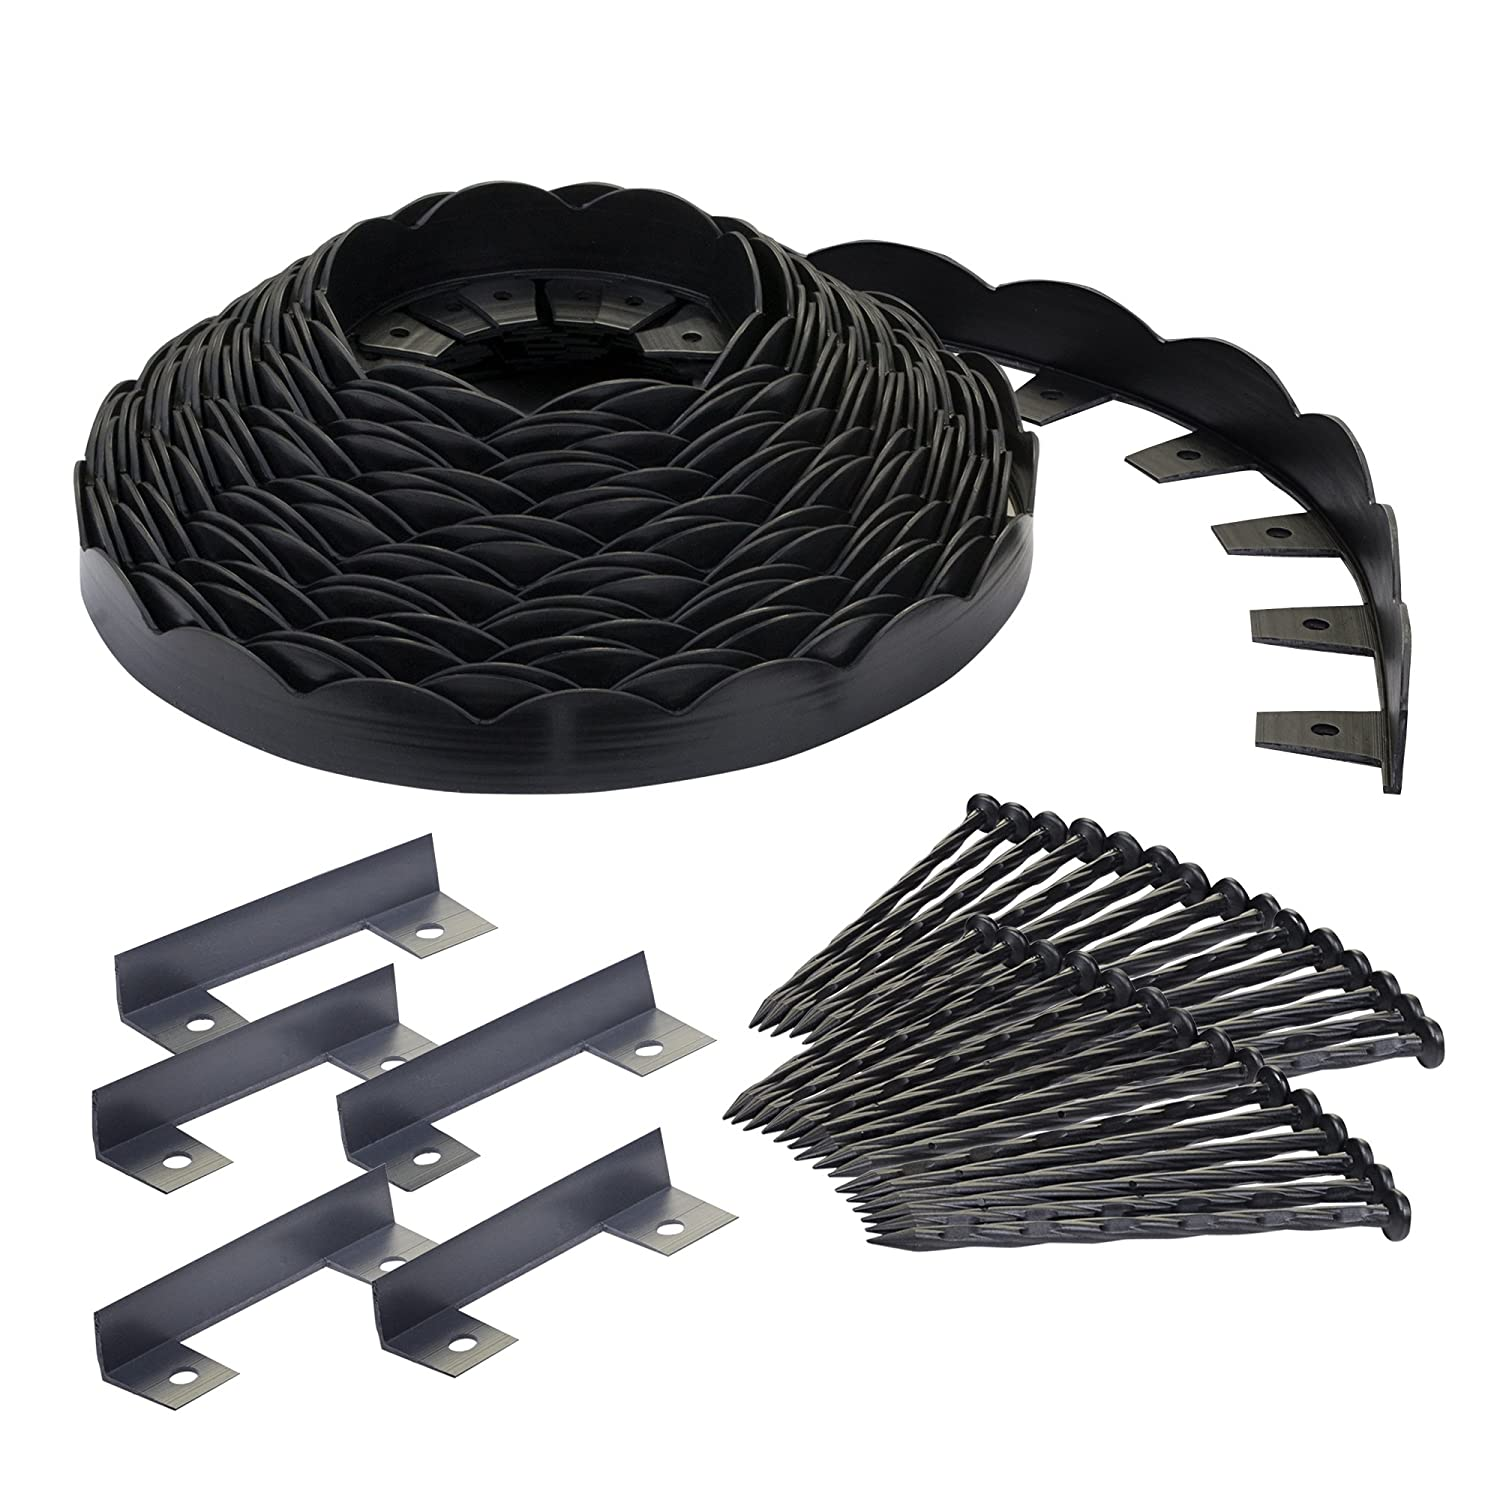 EasyFlex Dimex Scallop Top Plastic No-Dig Edging Project Kit, 100-Feet 3210-100C